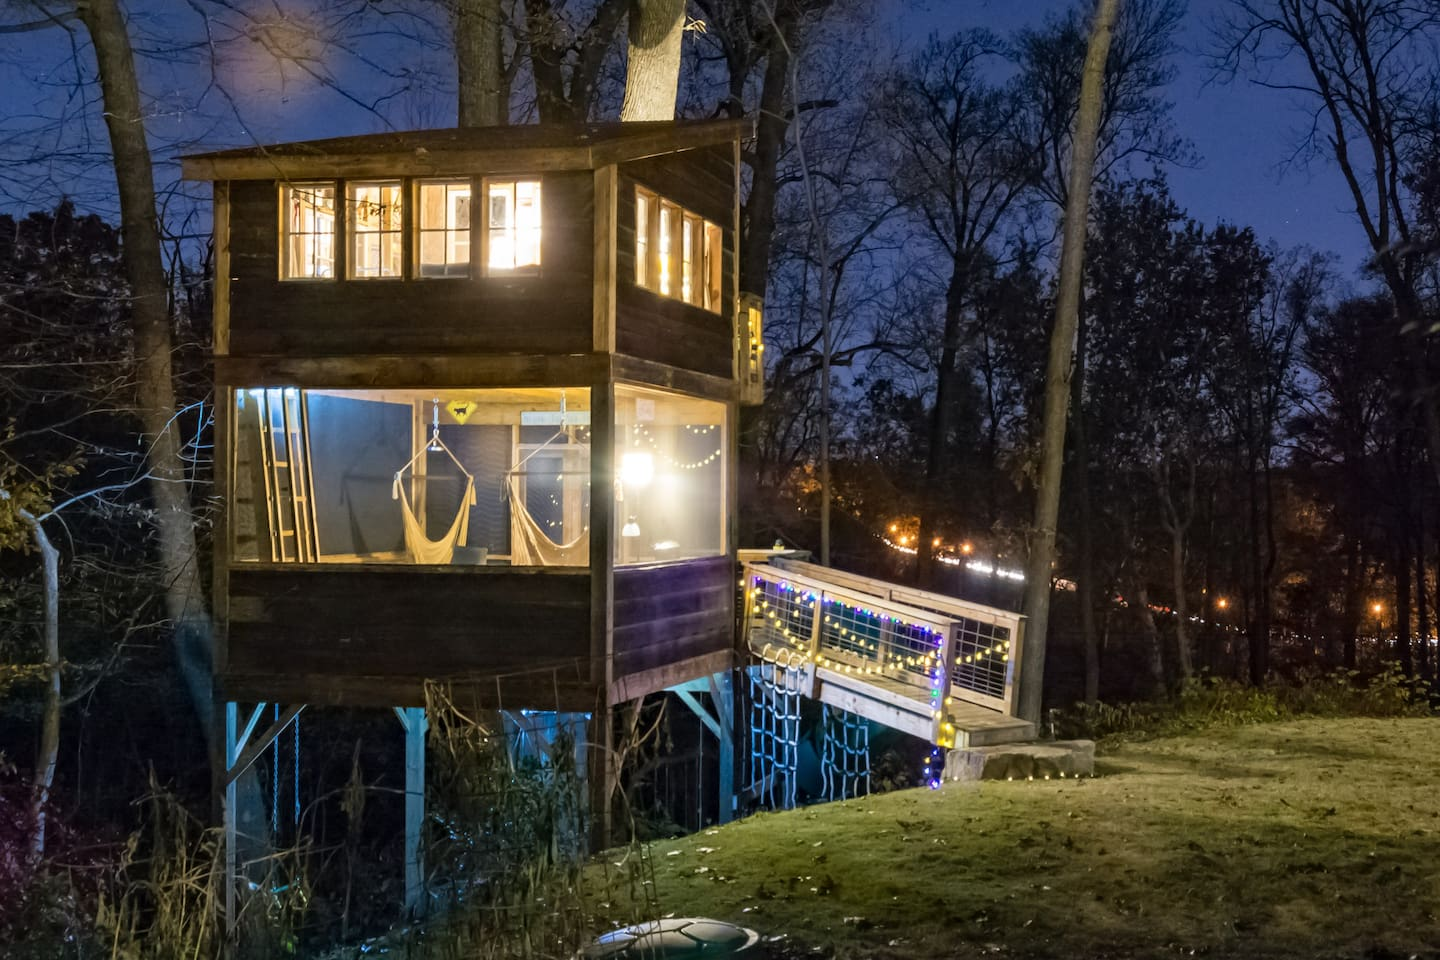 I absolutely LOVE this night shot that one of our guests took of the Trailside Treehouse. In the winter when the leaves fall from the trees, we can see a chain of car headlights as commuters come home from work. It's one of my favorite times of day because those lights through the trees are so beautiful to me--full of life and of getting home.